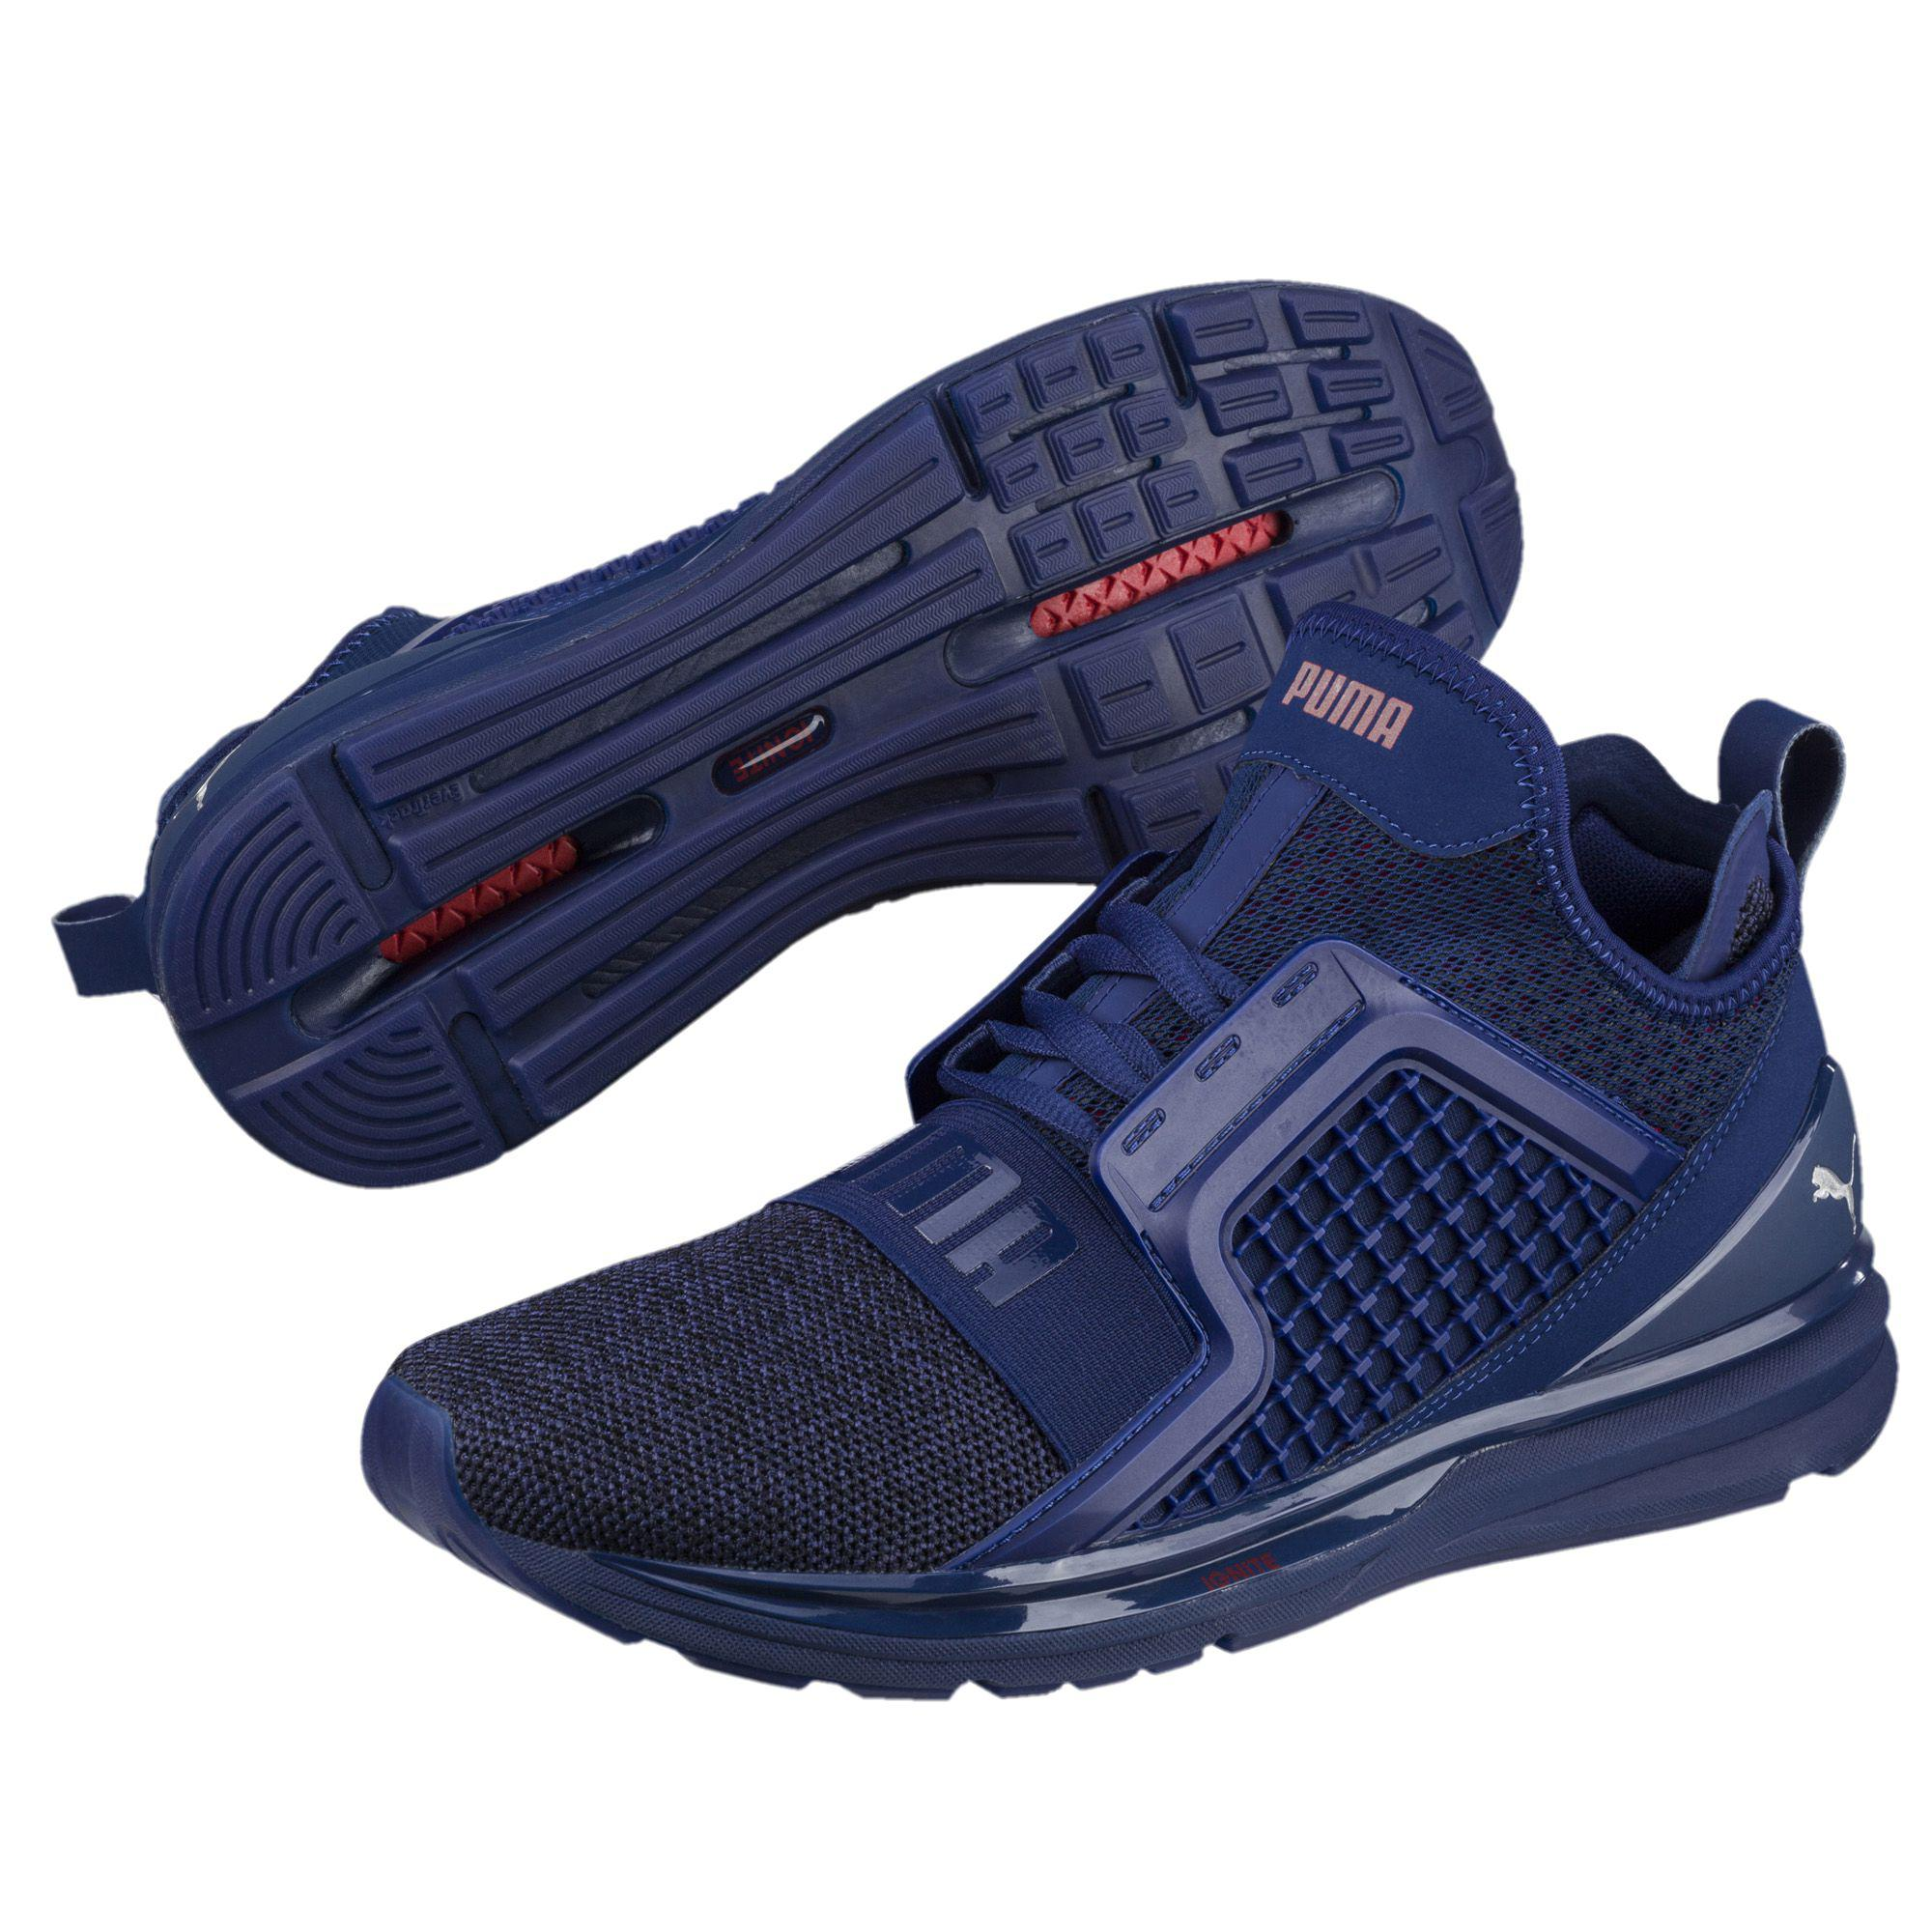 0f5029faff3 Lyst - PUMA Ignite Limitless Knit Men s Training Shoes in Blue for Men